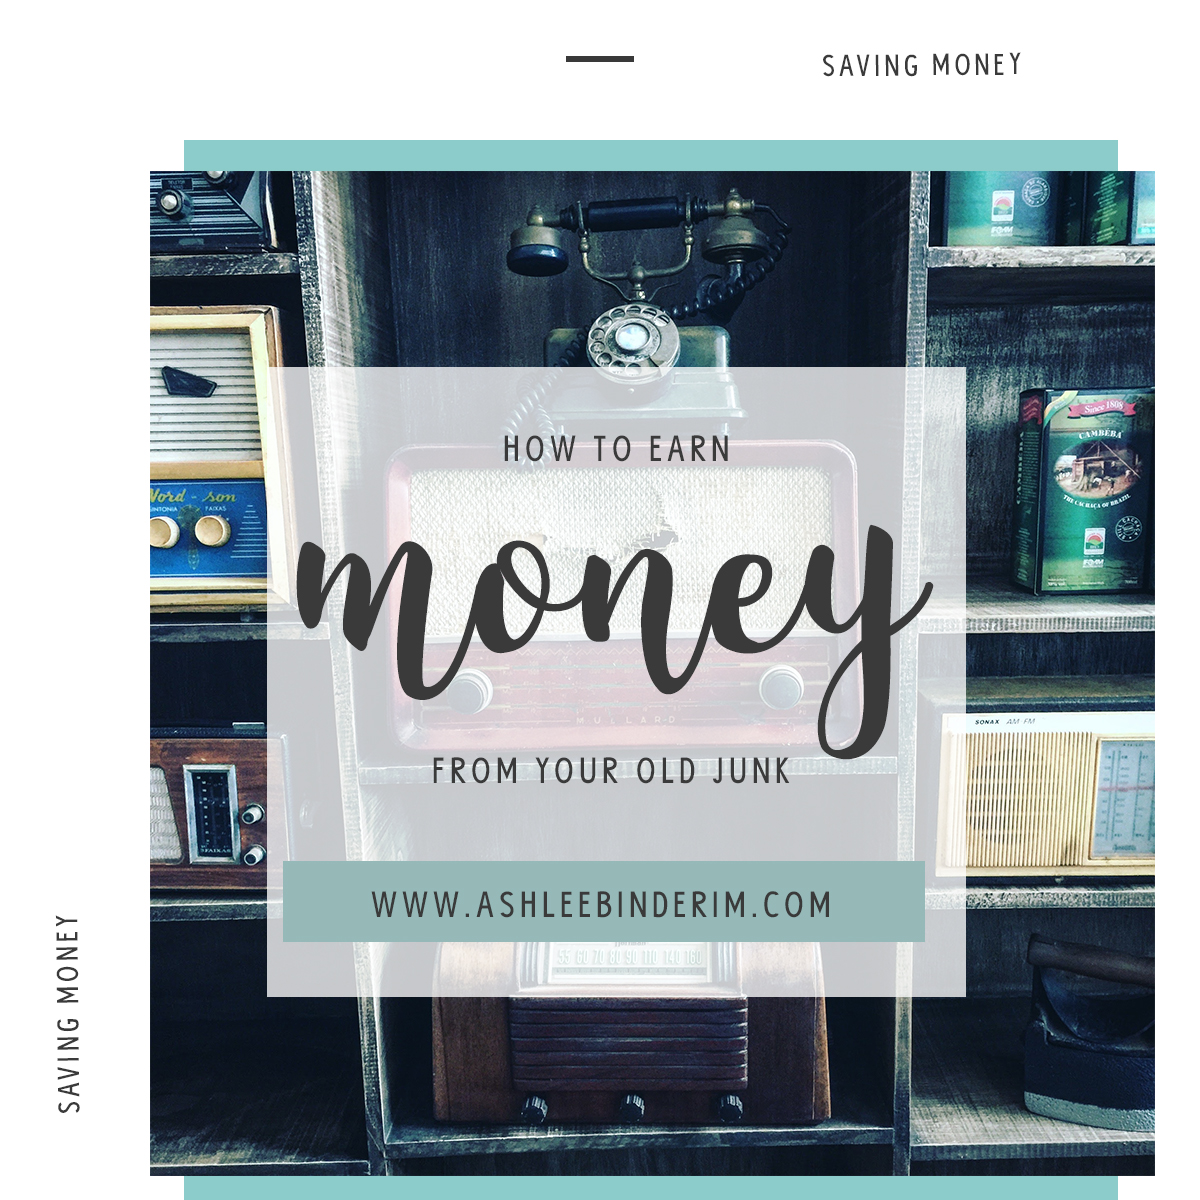 How to earn money from your old junk